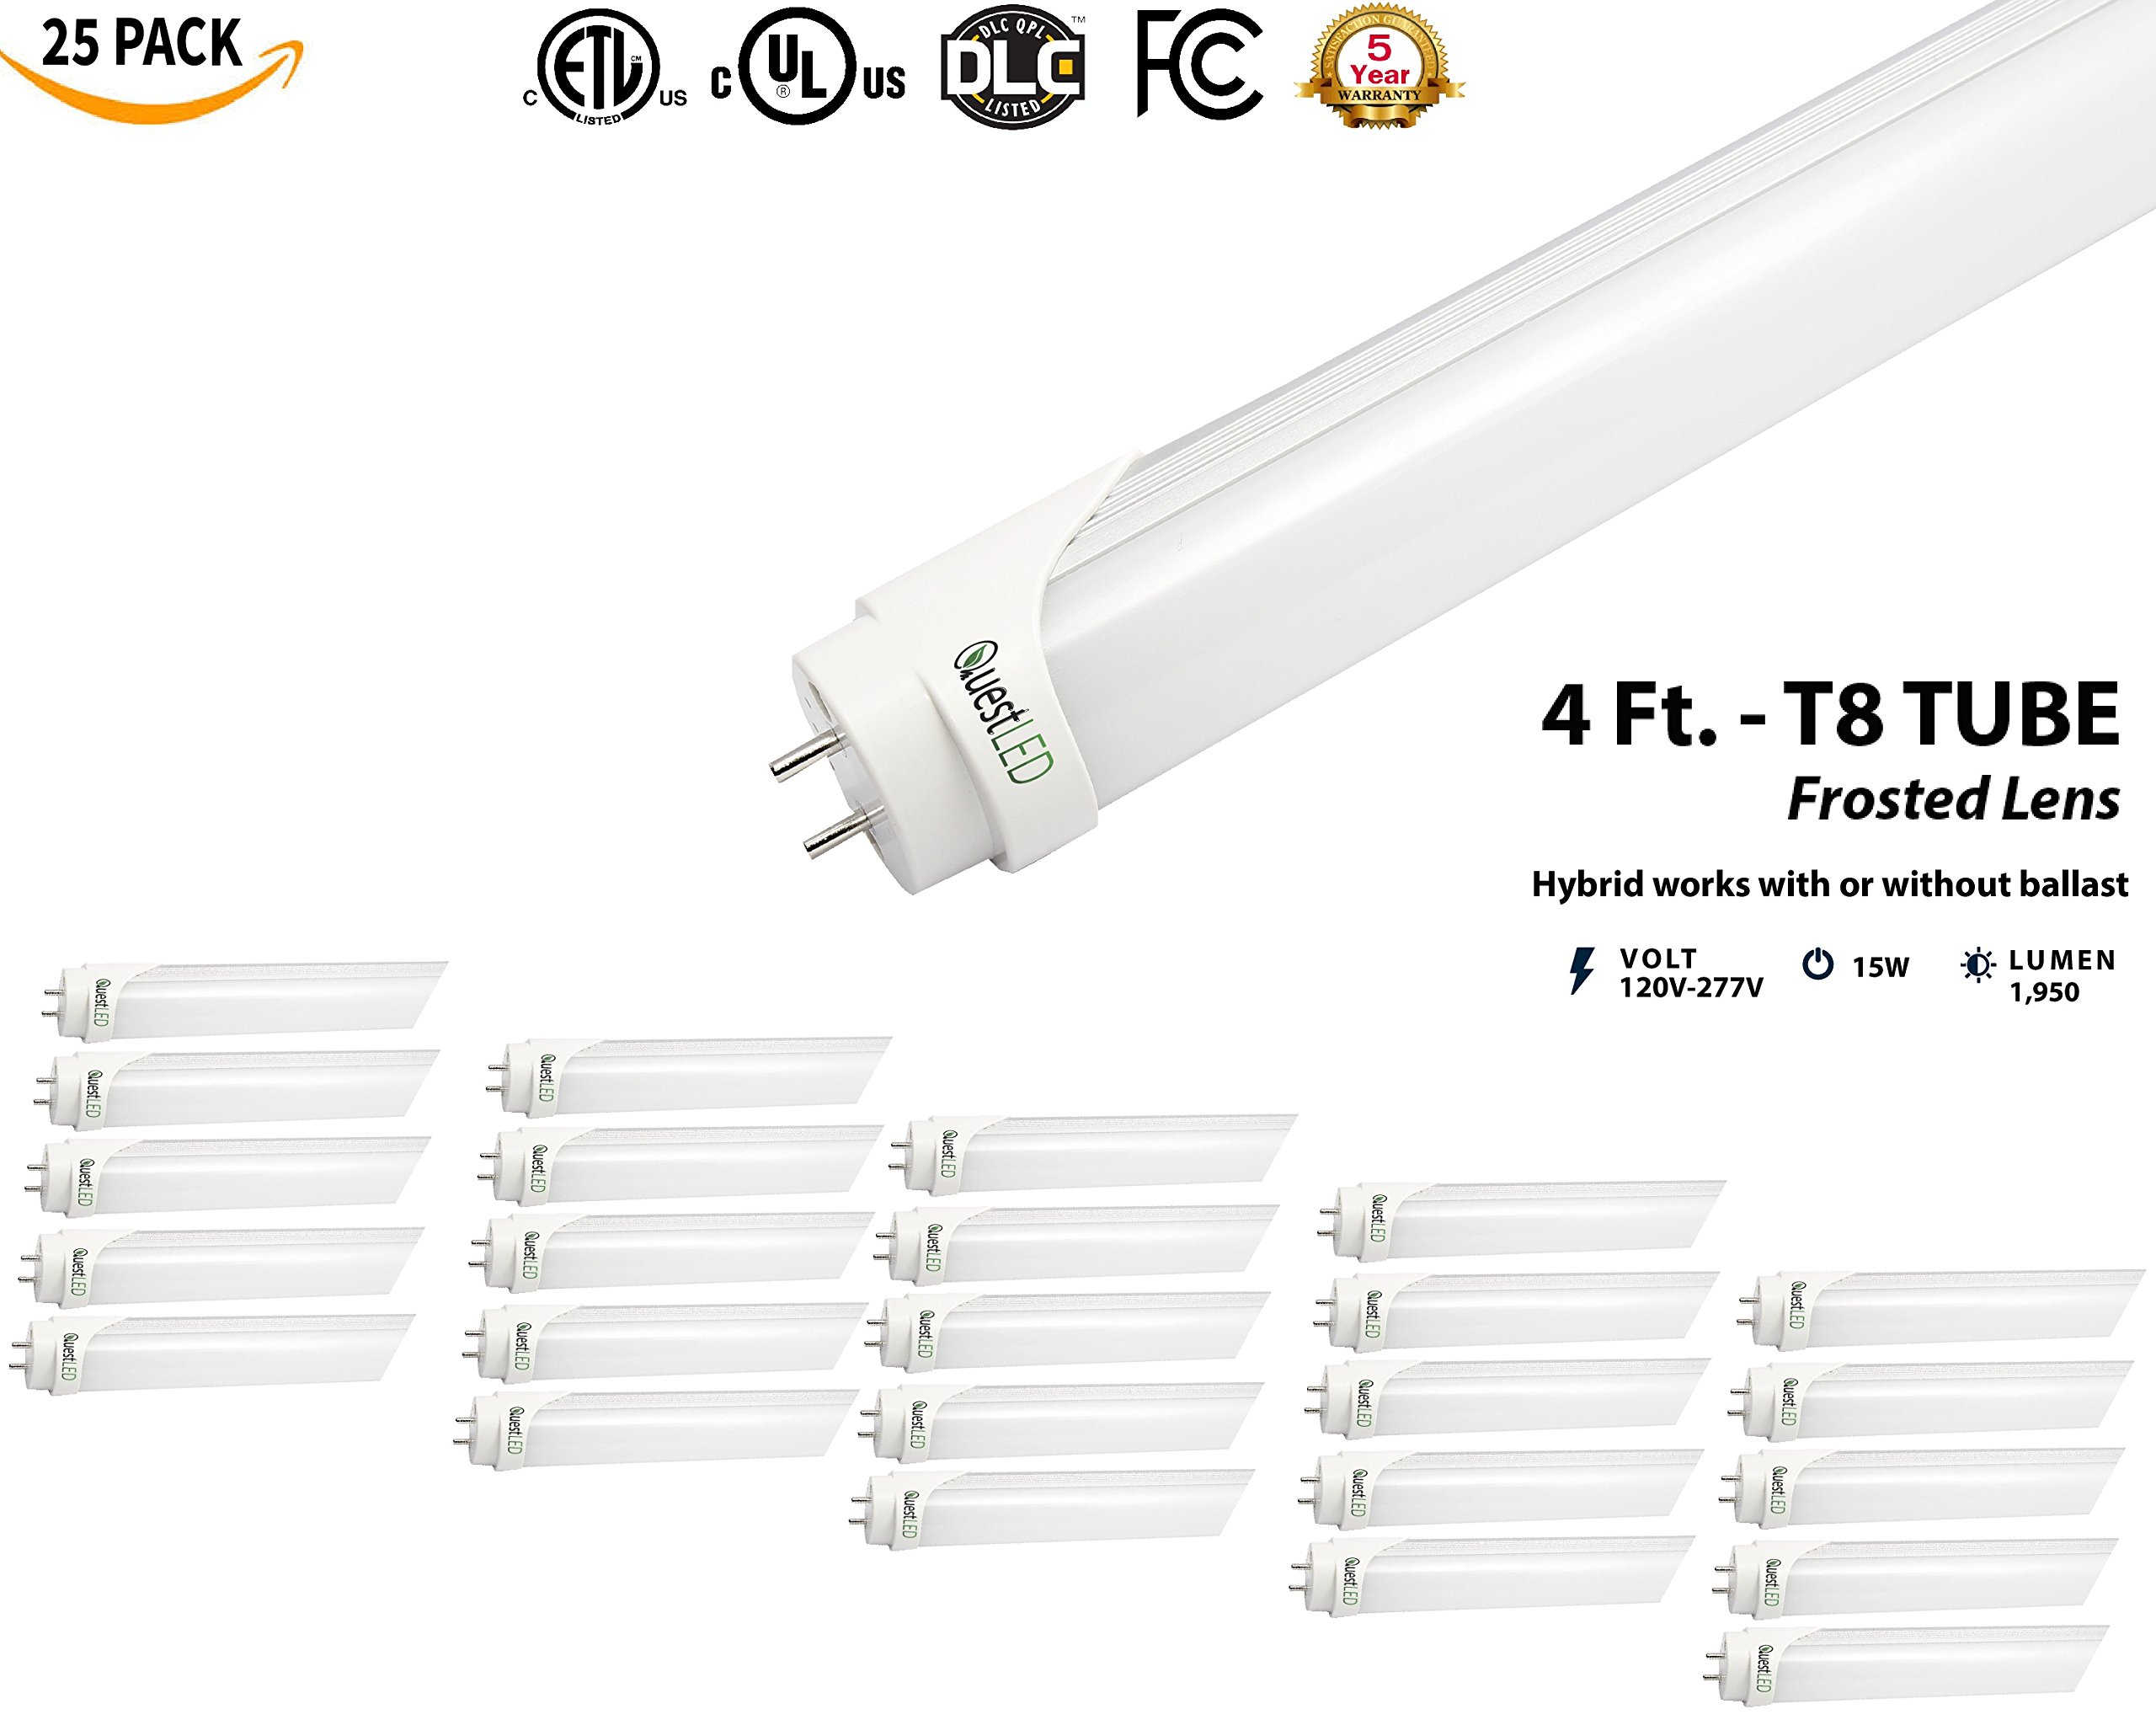 LED T8, T10, T12 Tube Light 4FT; (25 PACK) 15W= 36w Equivalent; 120V-277V AC/DC, Works WITH or WITHOUT Ballast, Single or Double Ended Powered; 1,950 Lumens; UL/DLC (Daylight 5000K) by QUEST MANUFACTURING